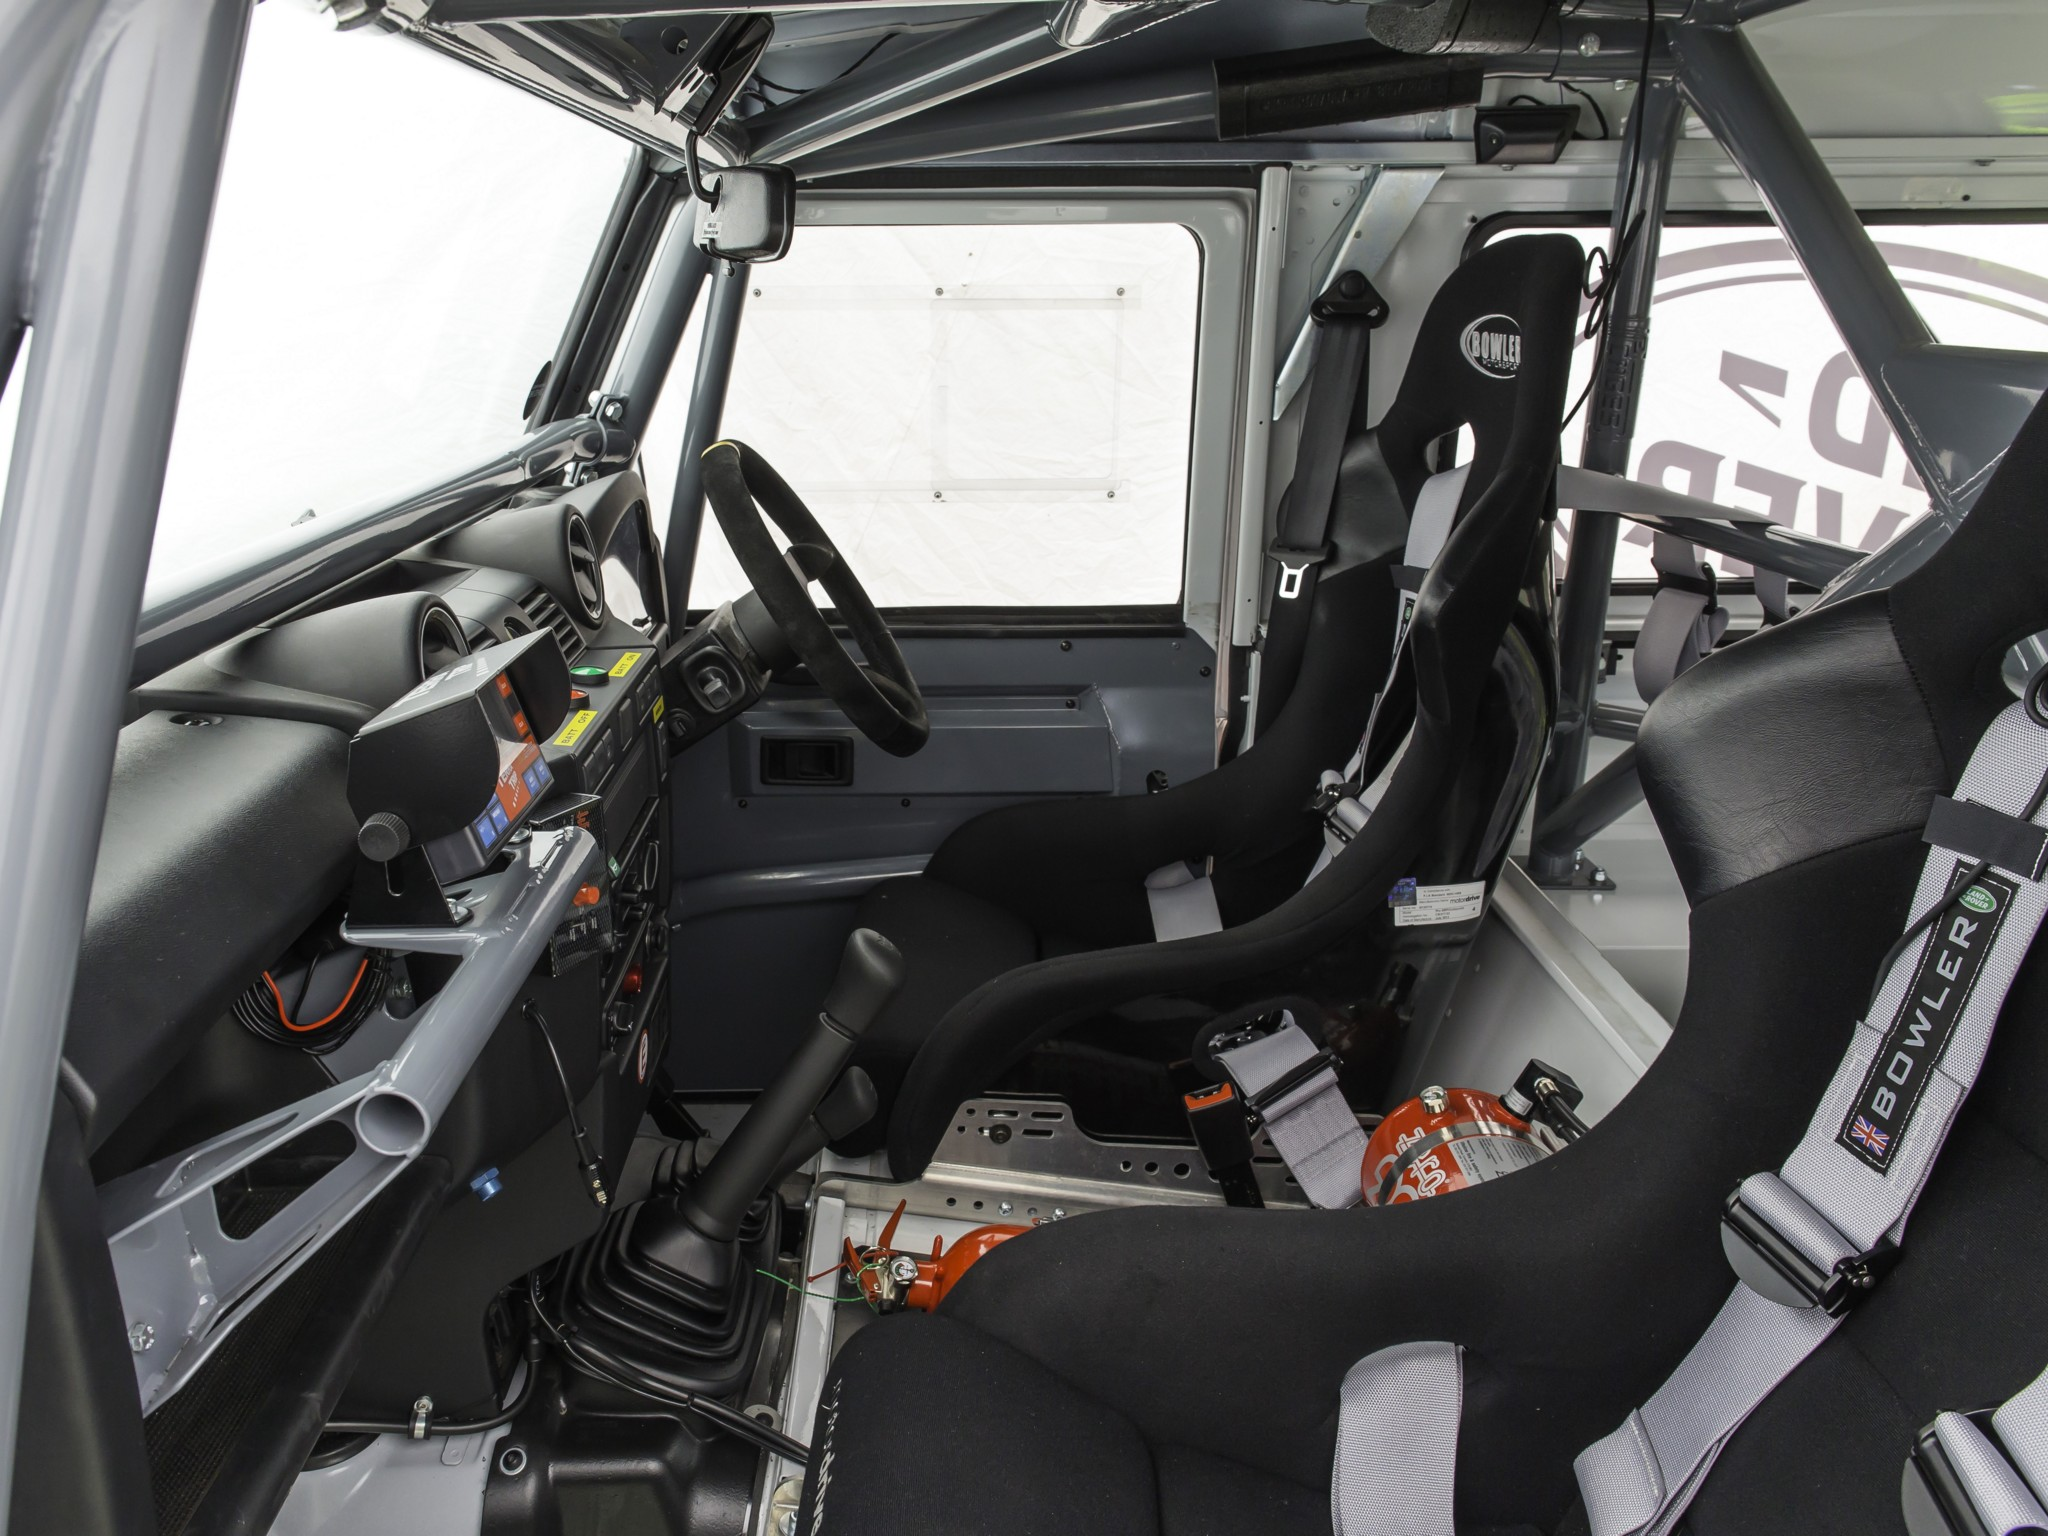 2014 Land Rover Defender Challenge Truck suv 4x4 race racing